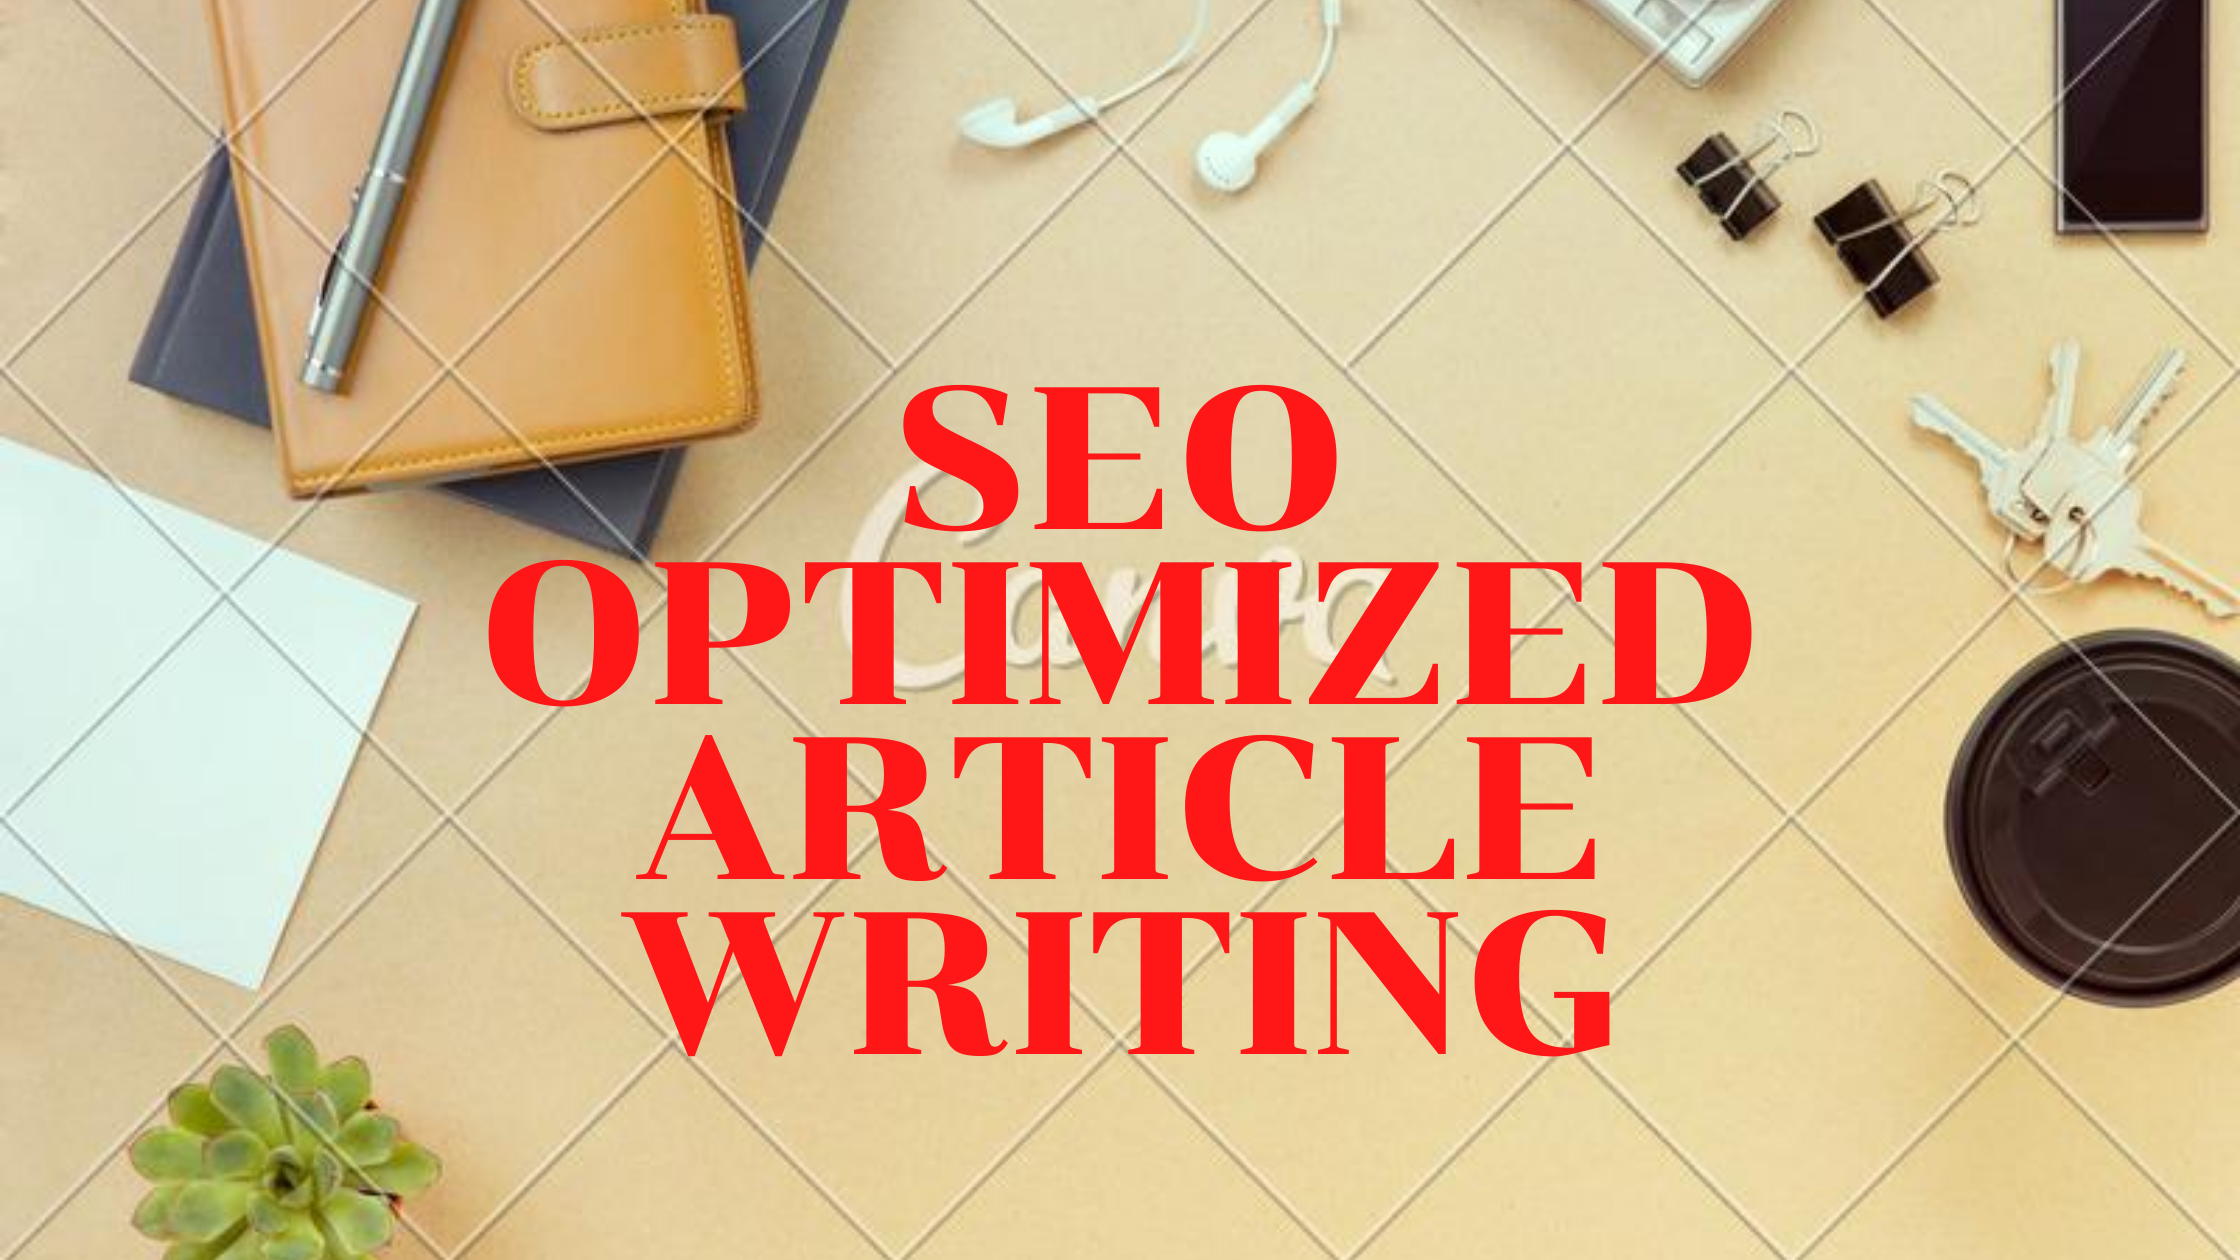 I will write 1500+ high quality SEO friendly article or blog post